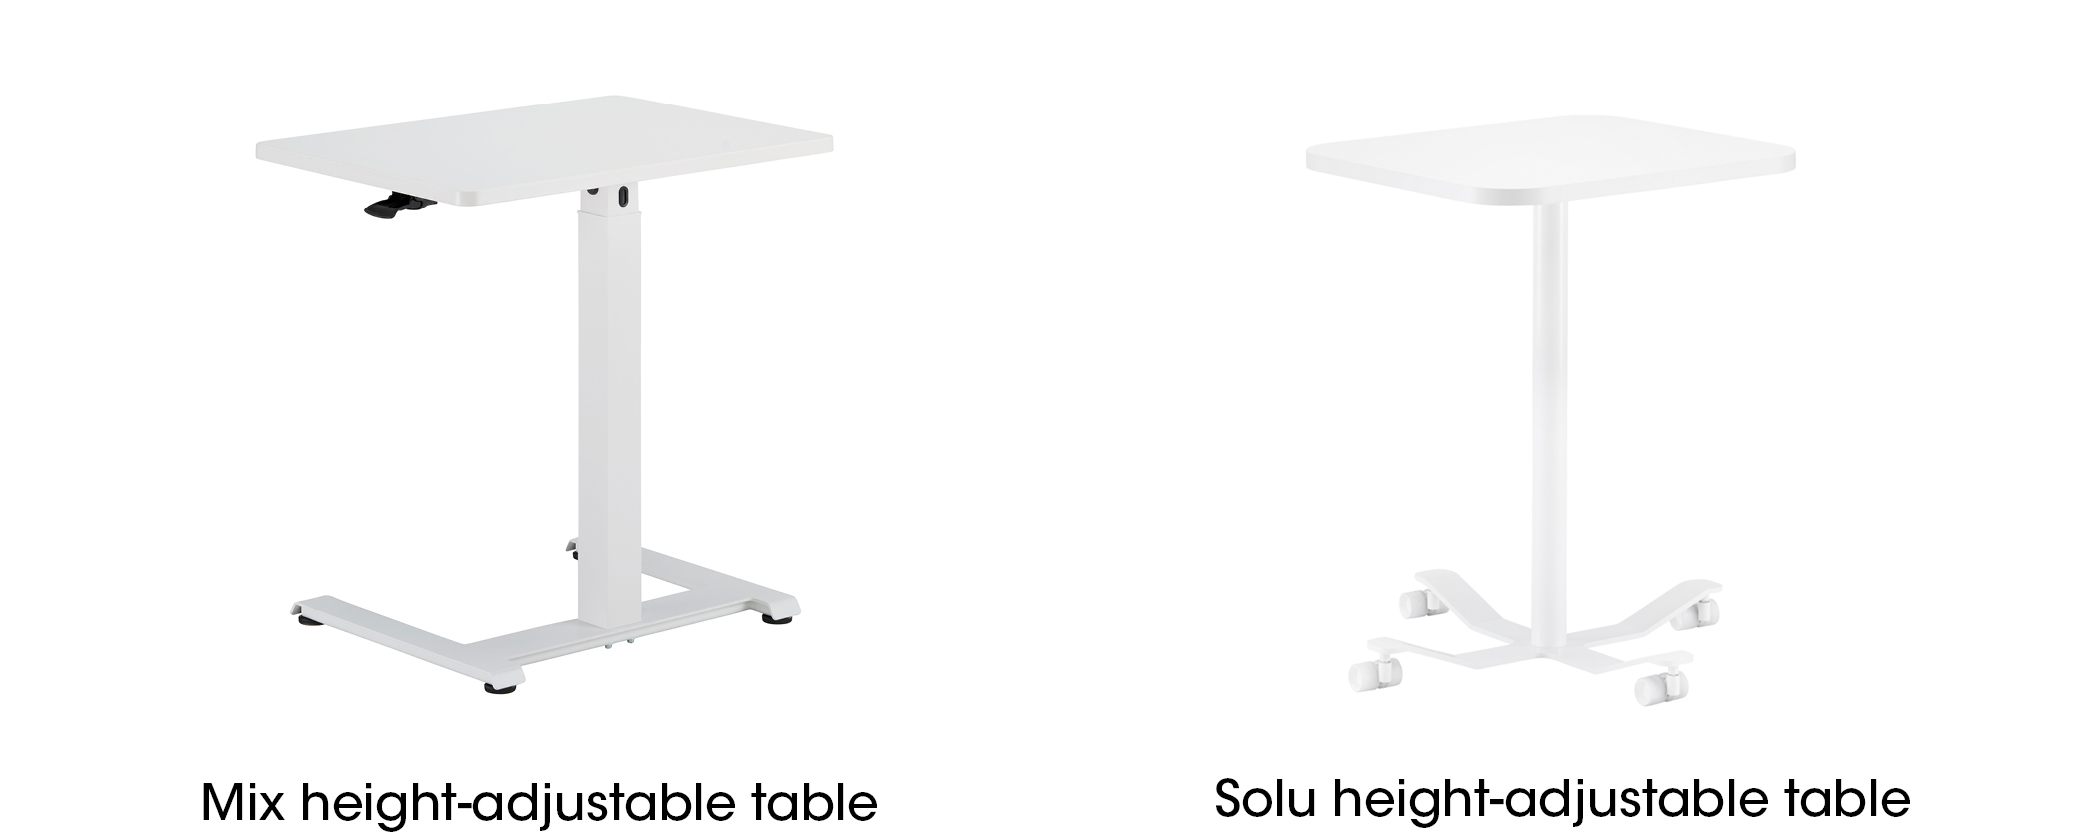 Mix and Solu tables